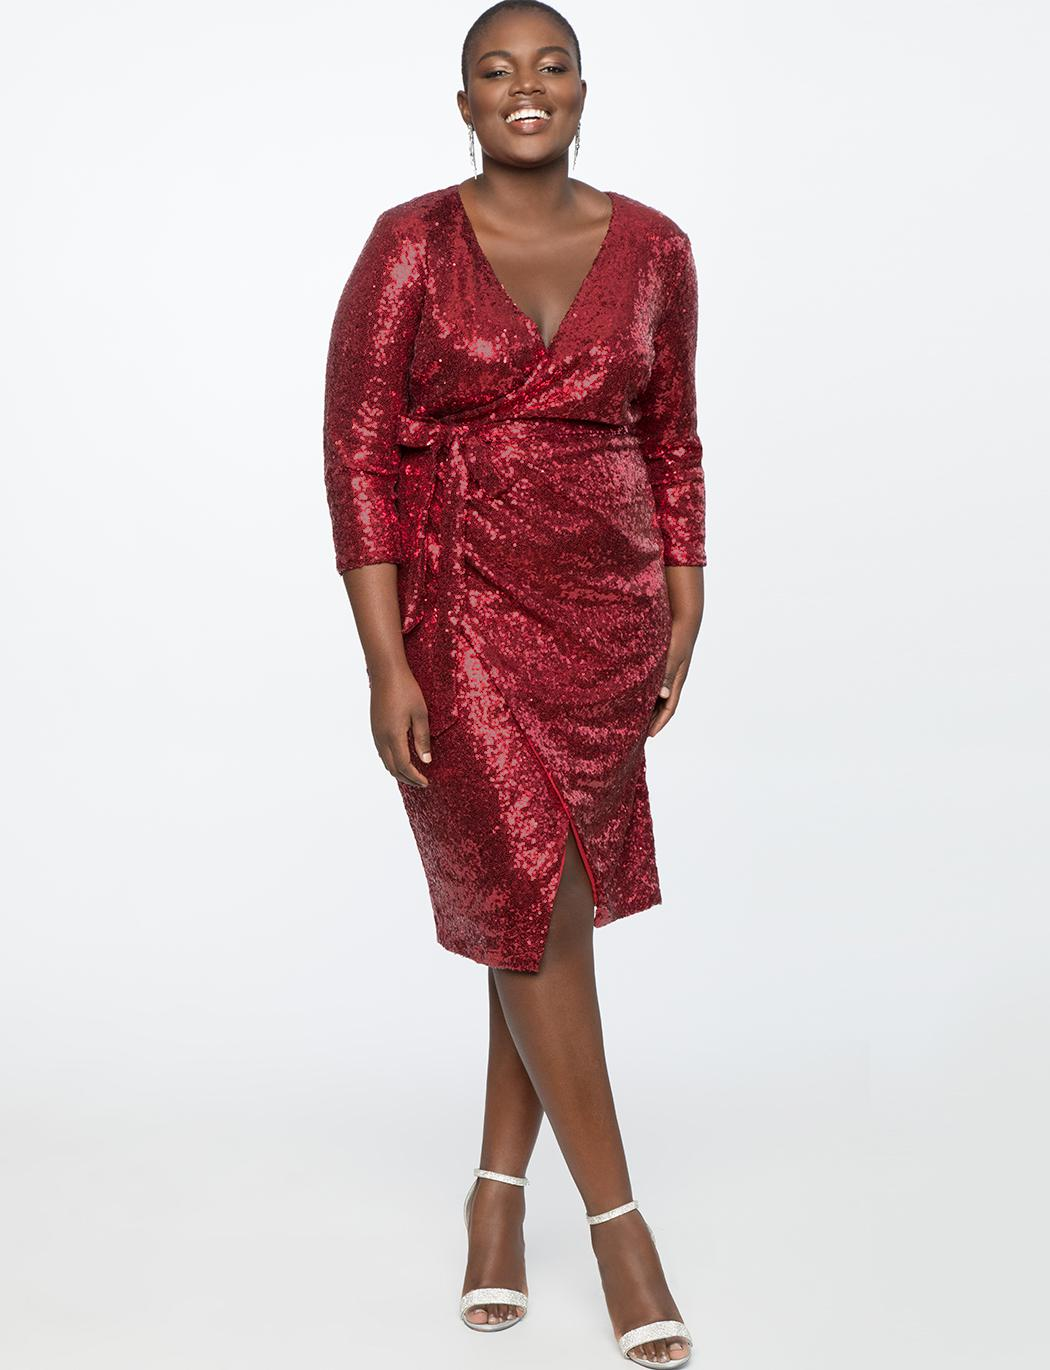 7d1acc8ce9b Eloquii Sequin Wrap Dress in Red - Lyst